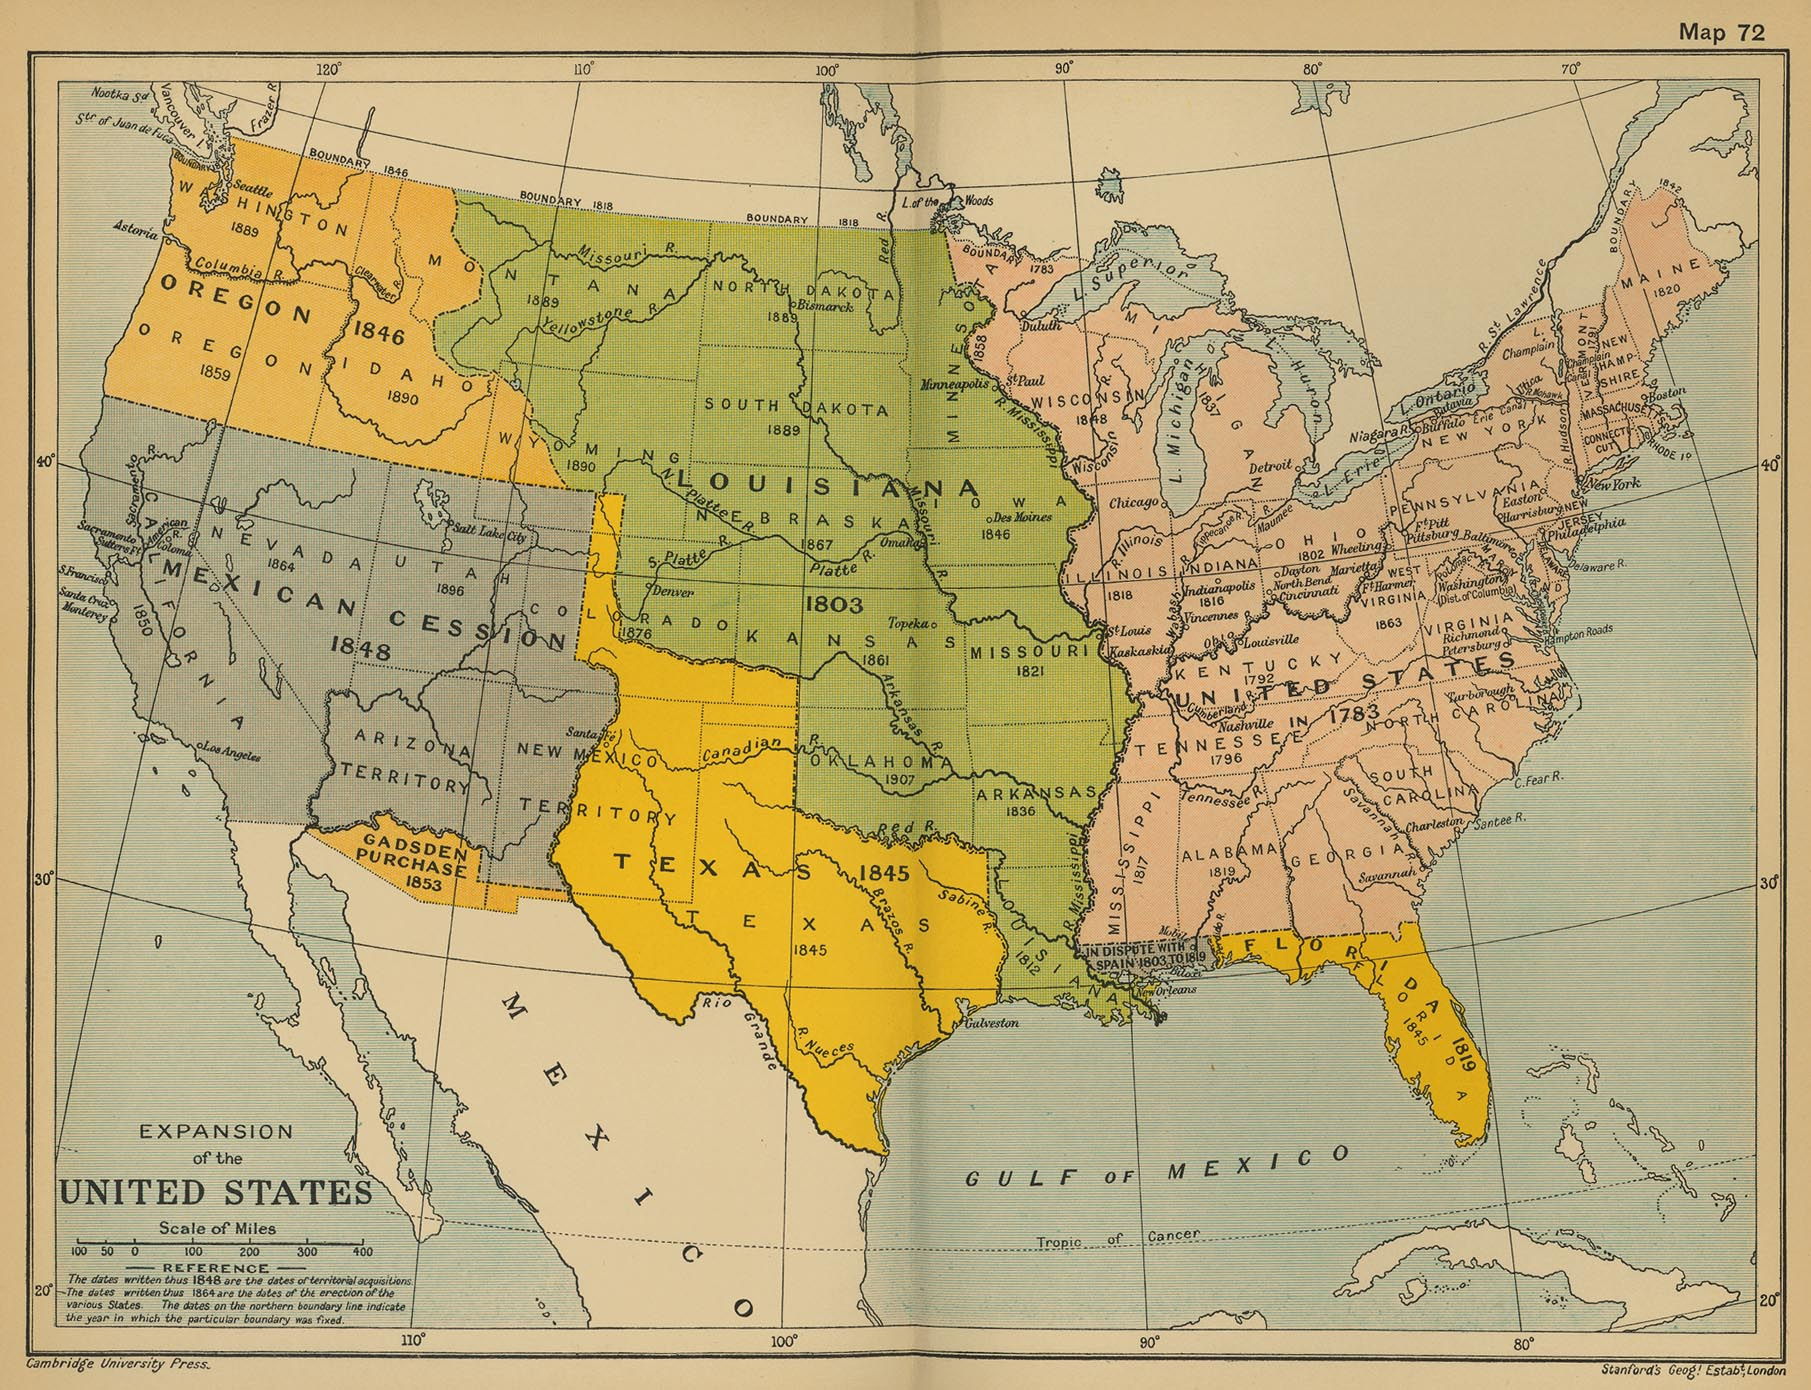 Map of the Expansion of the United States 1783-1907